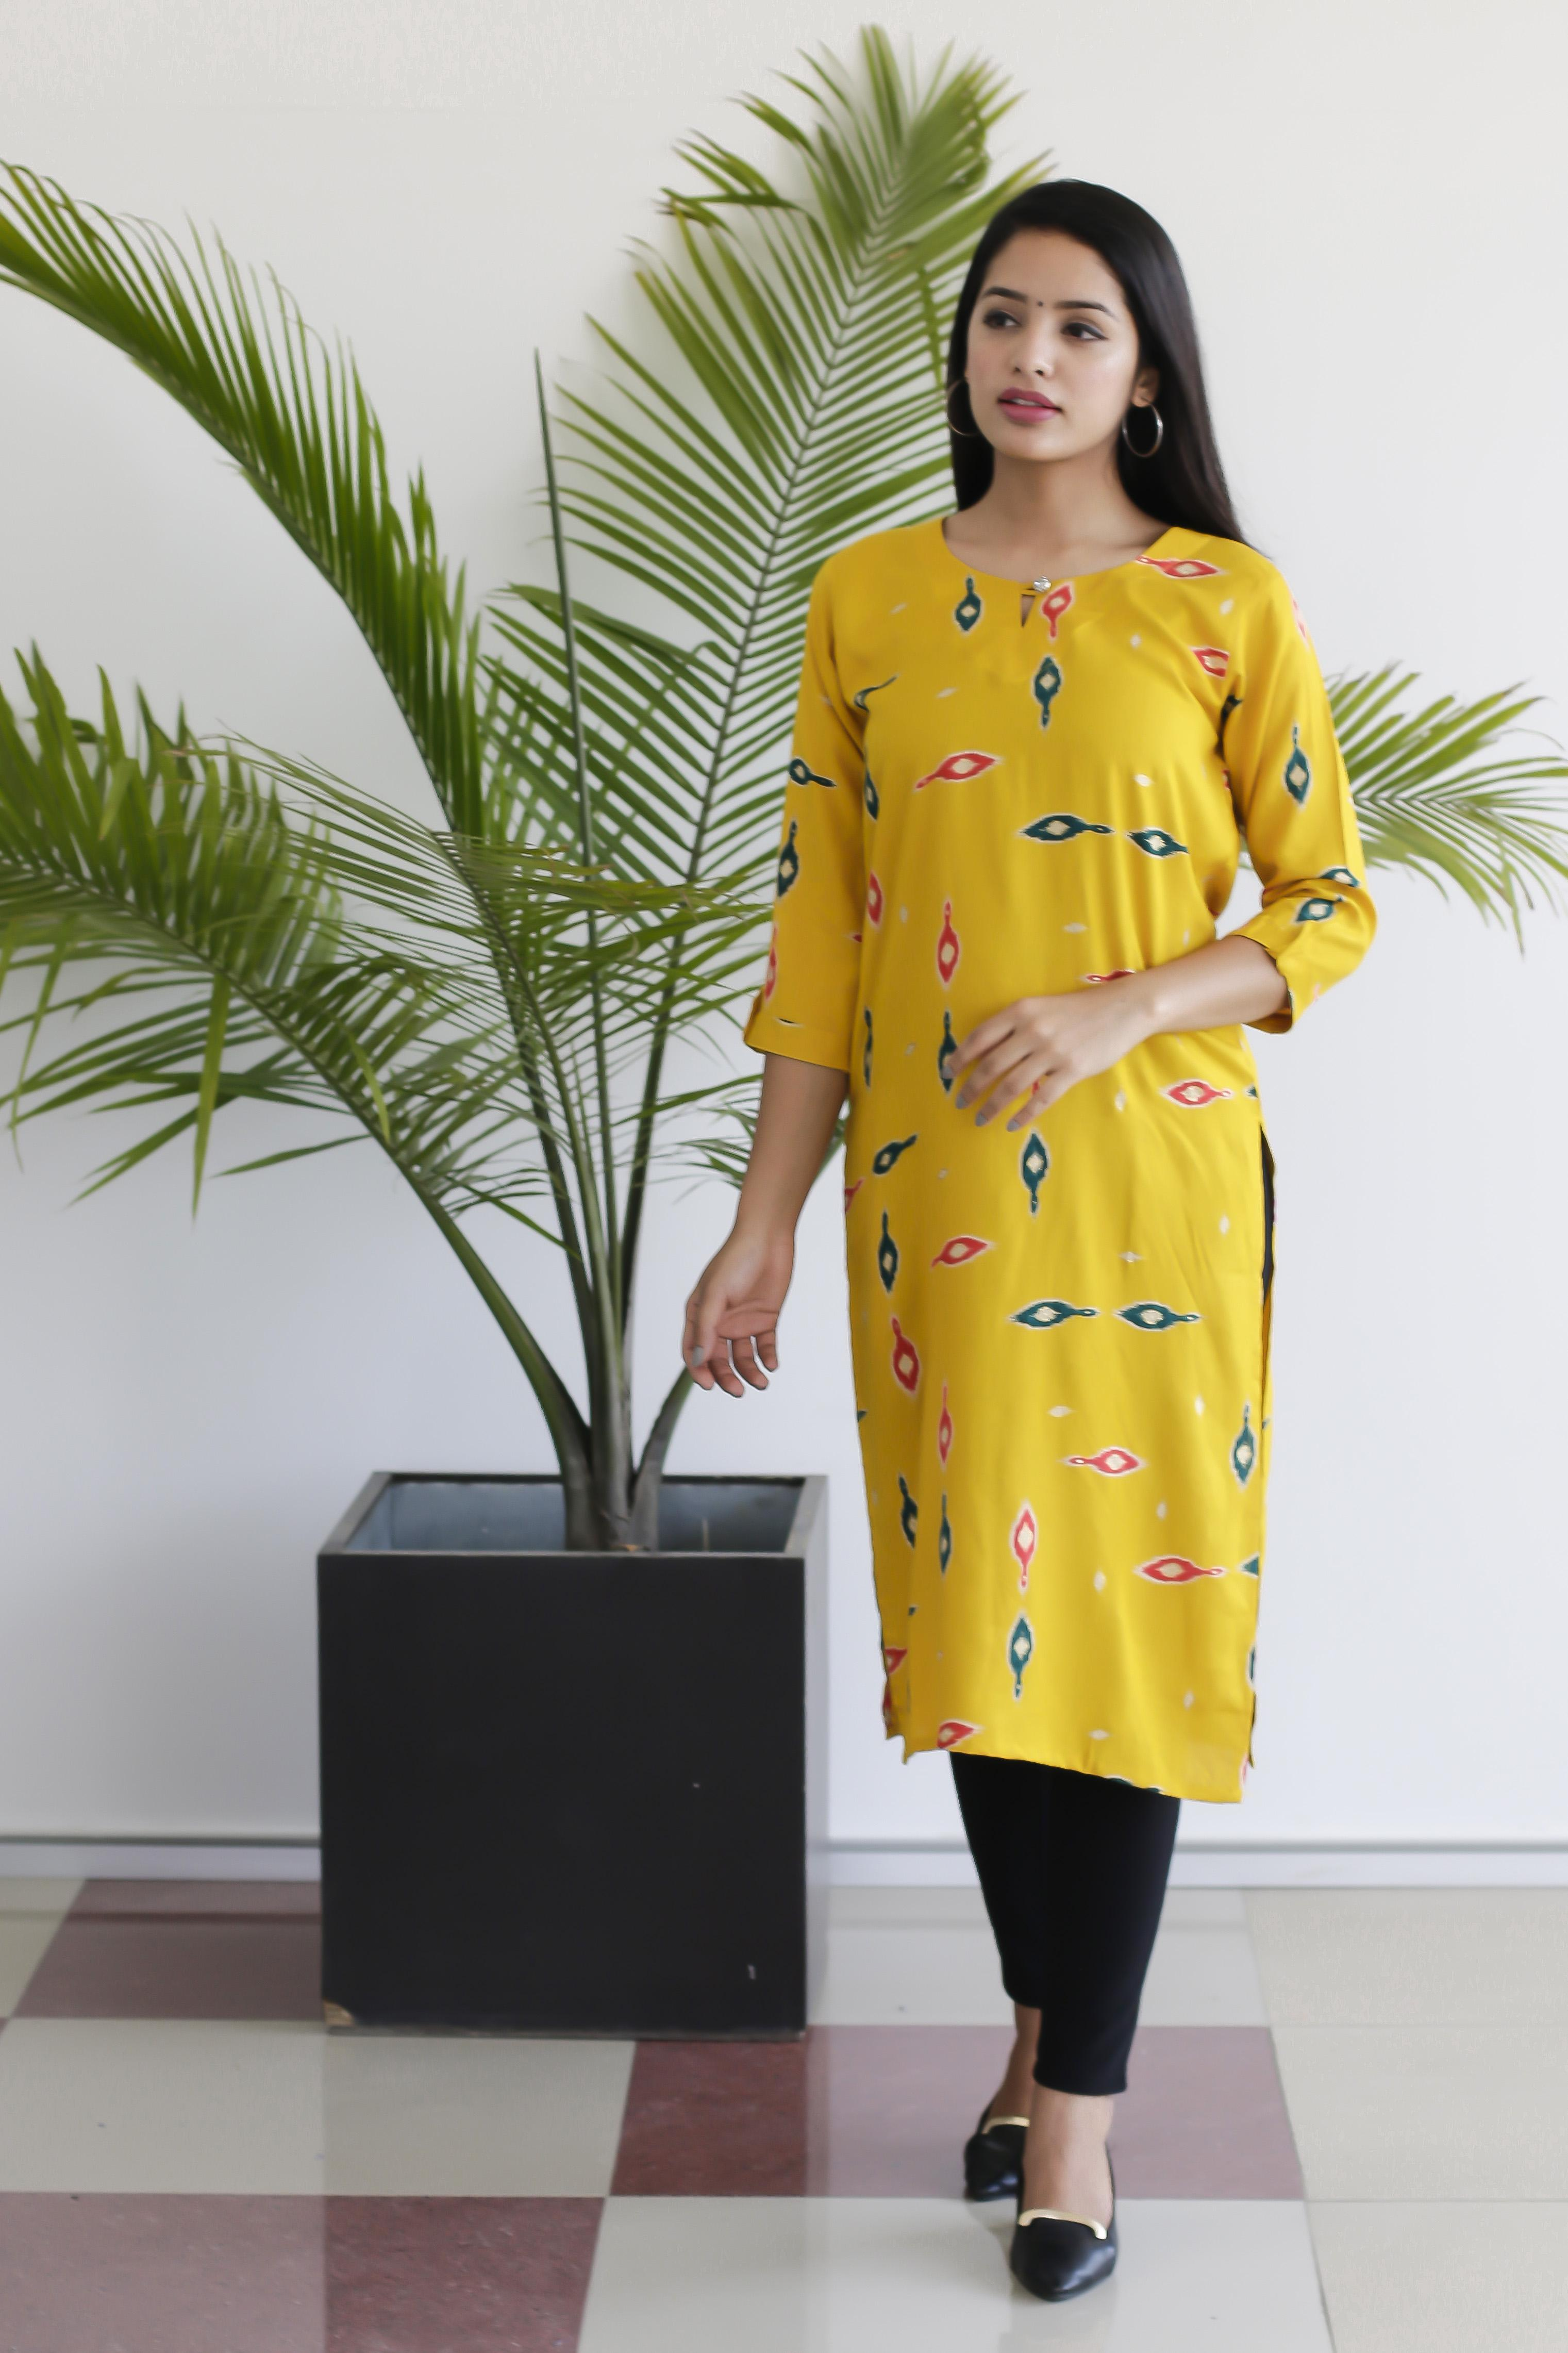 0c2a8ee8764 Women s Clothing In Nepal At Best Price - Daraz.com.np